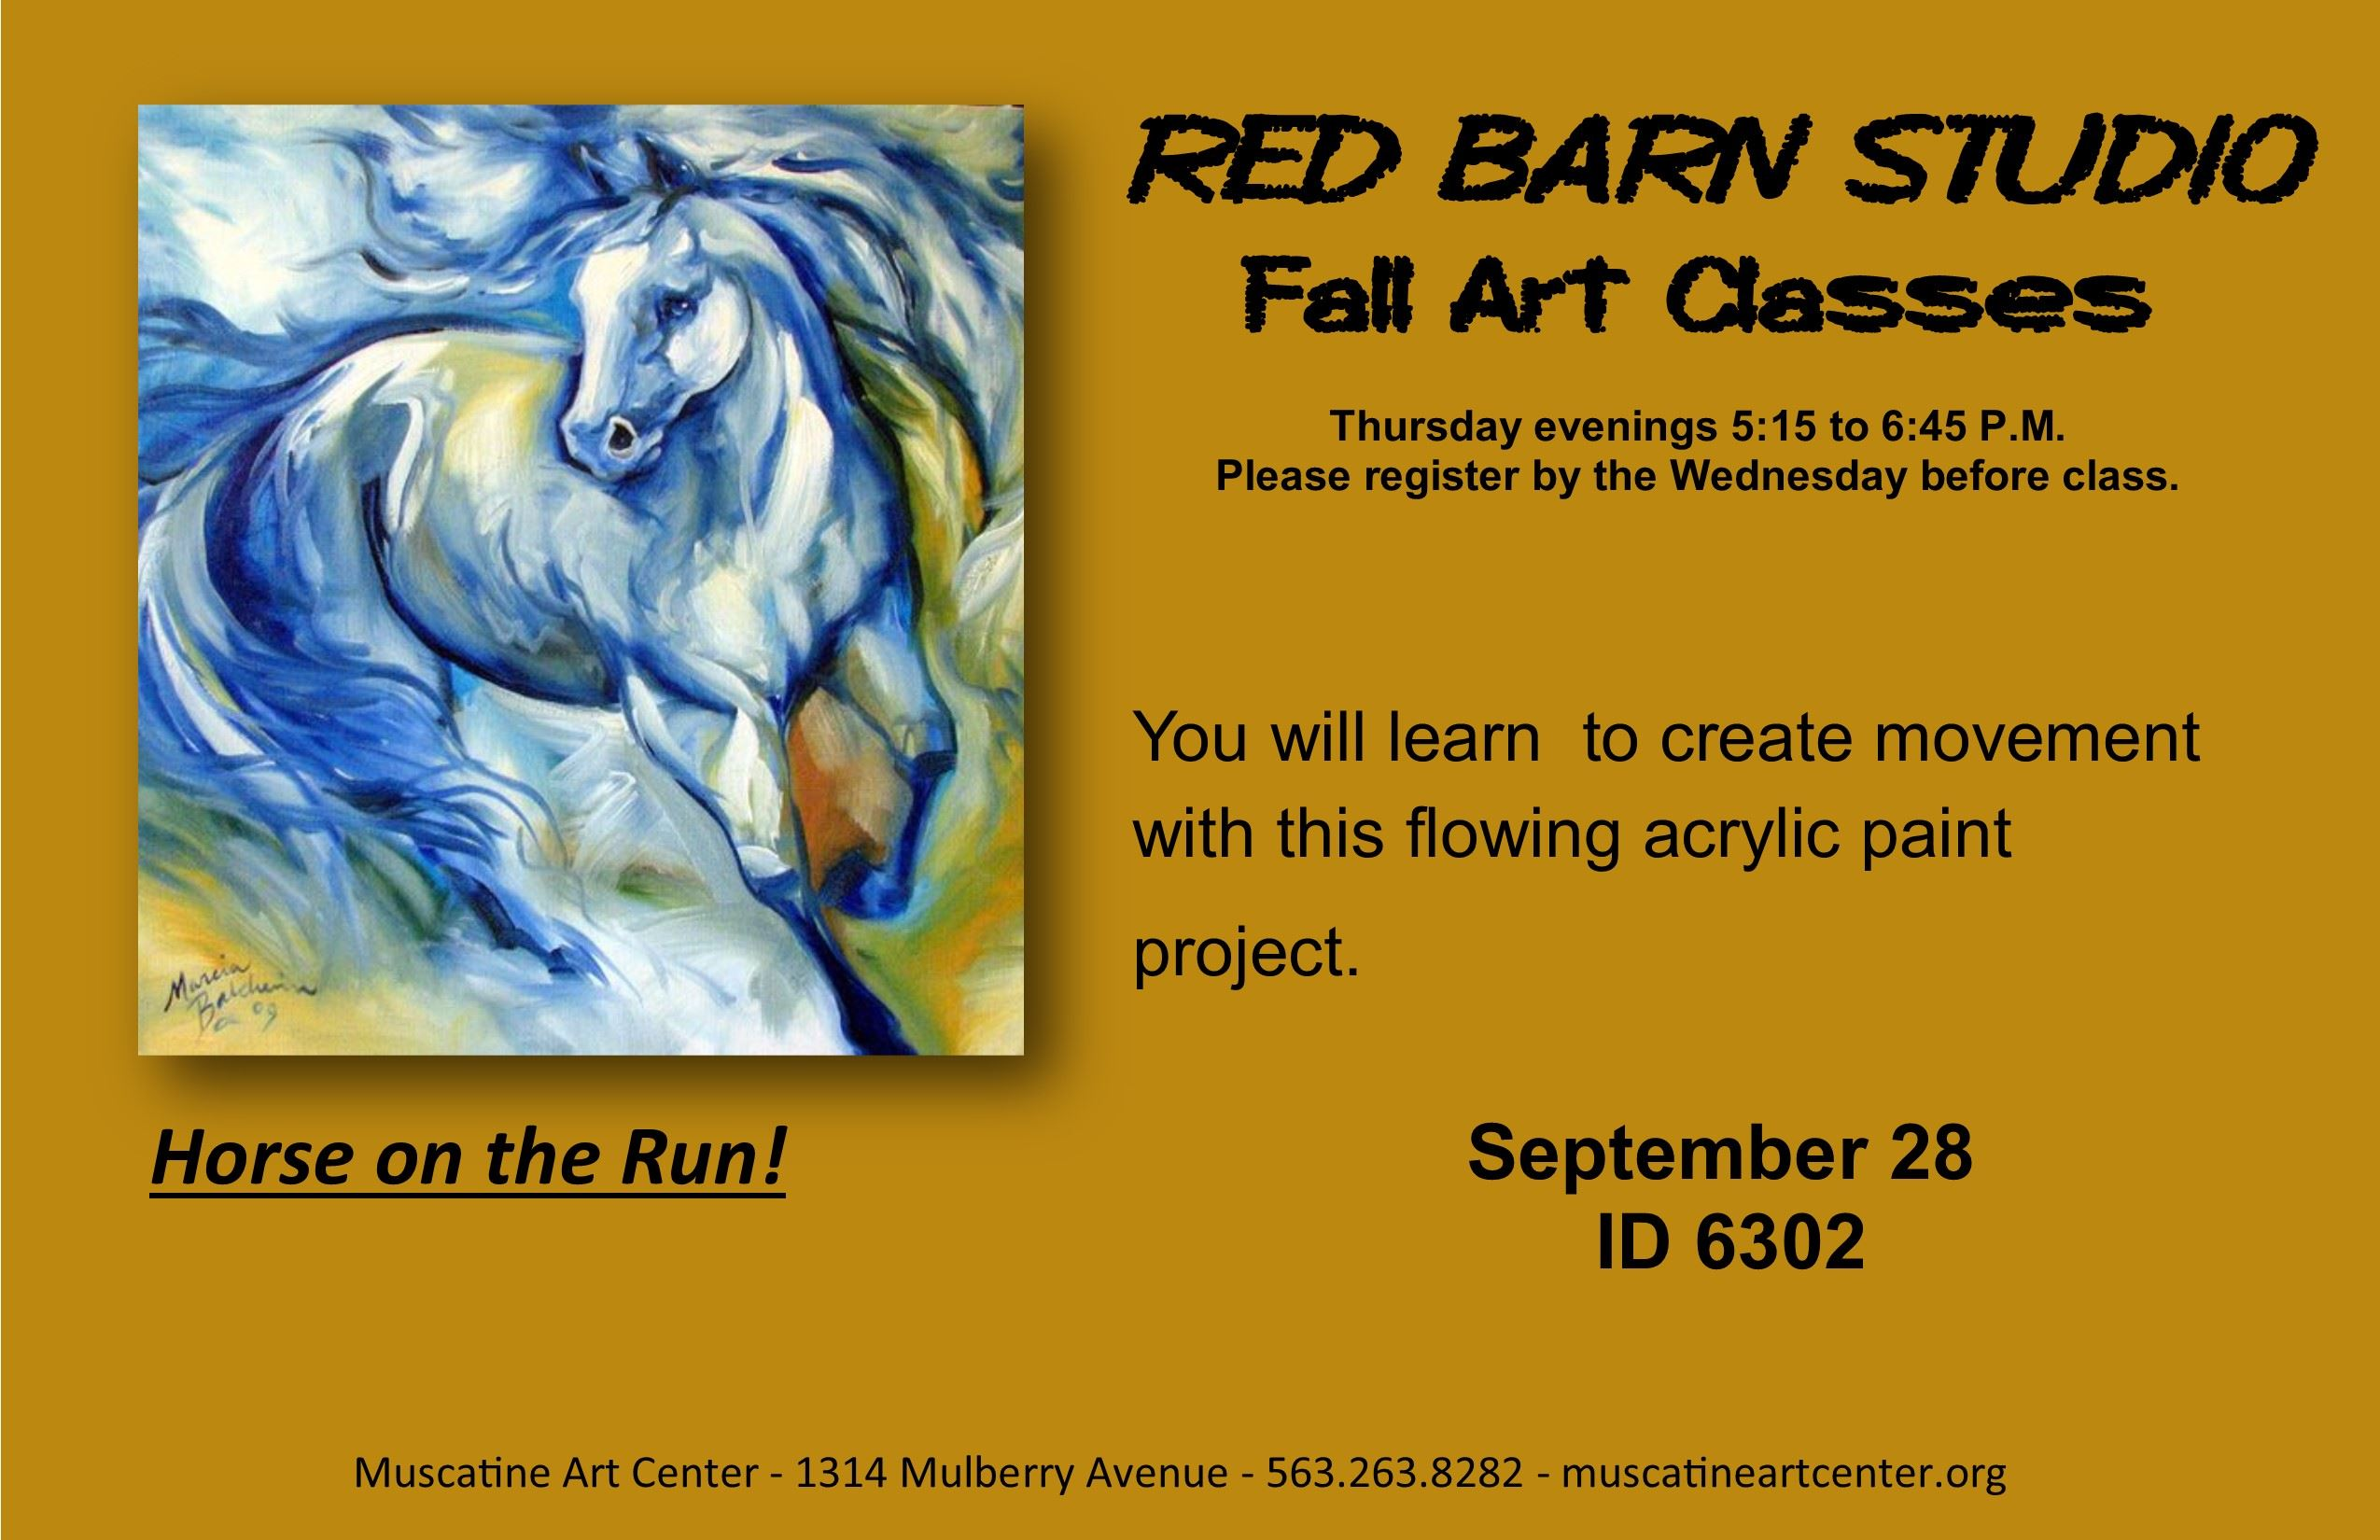 September 28 - Horse on the Run - Red Barn Studio ID 6302